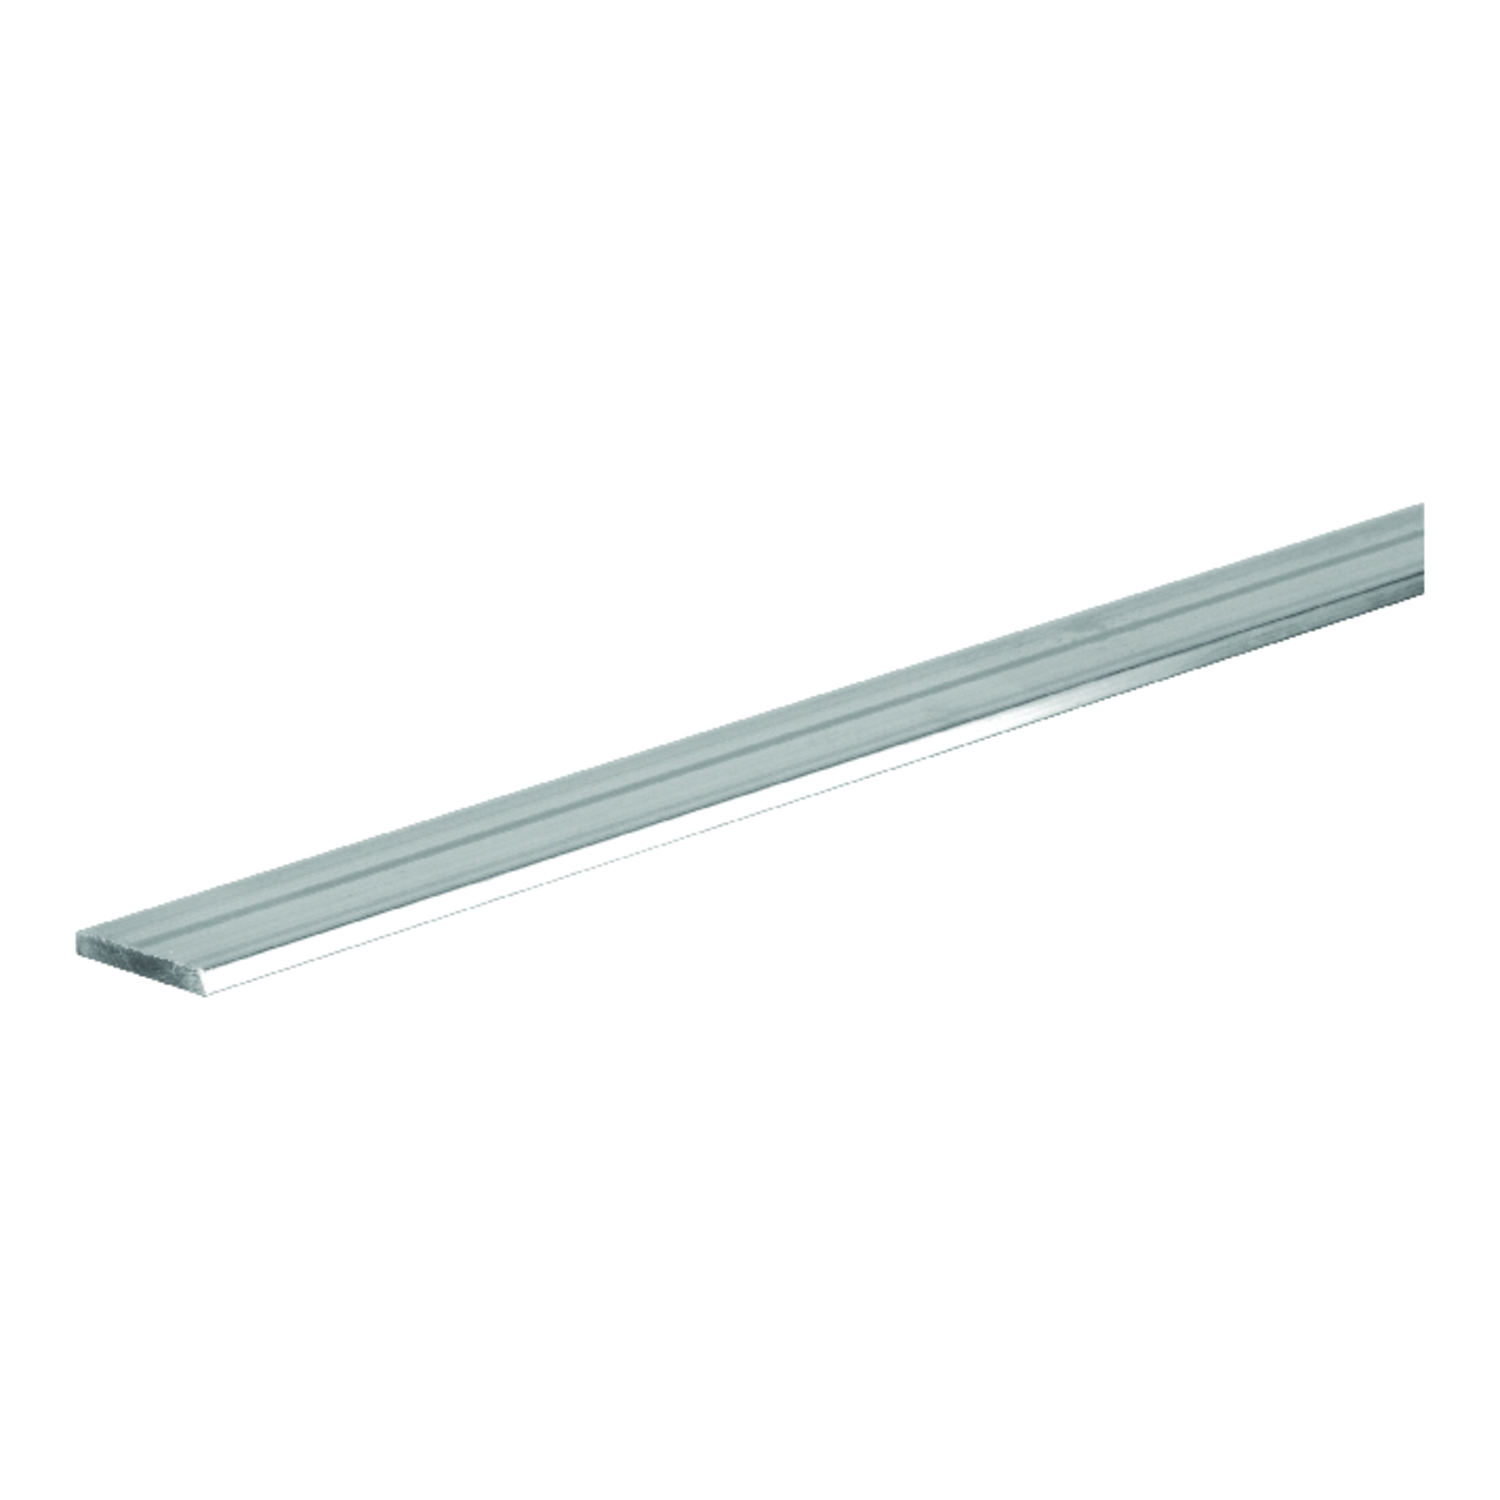 Boltmaster  0.25 in.  x 1 in. W x 4 ft. L Weldable Aluminum Flat Bar  5 pk